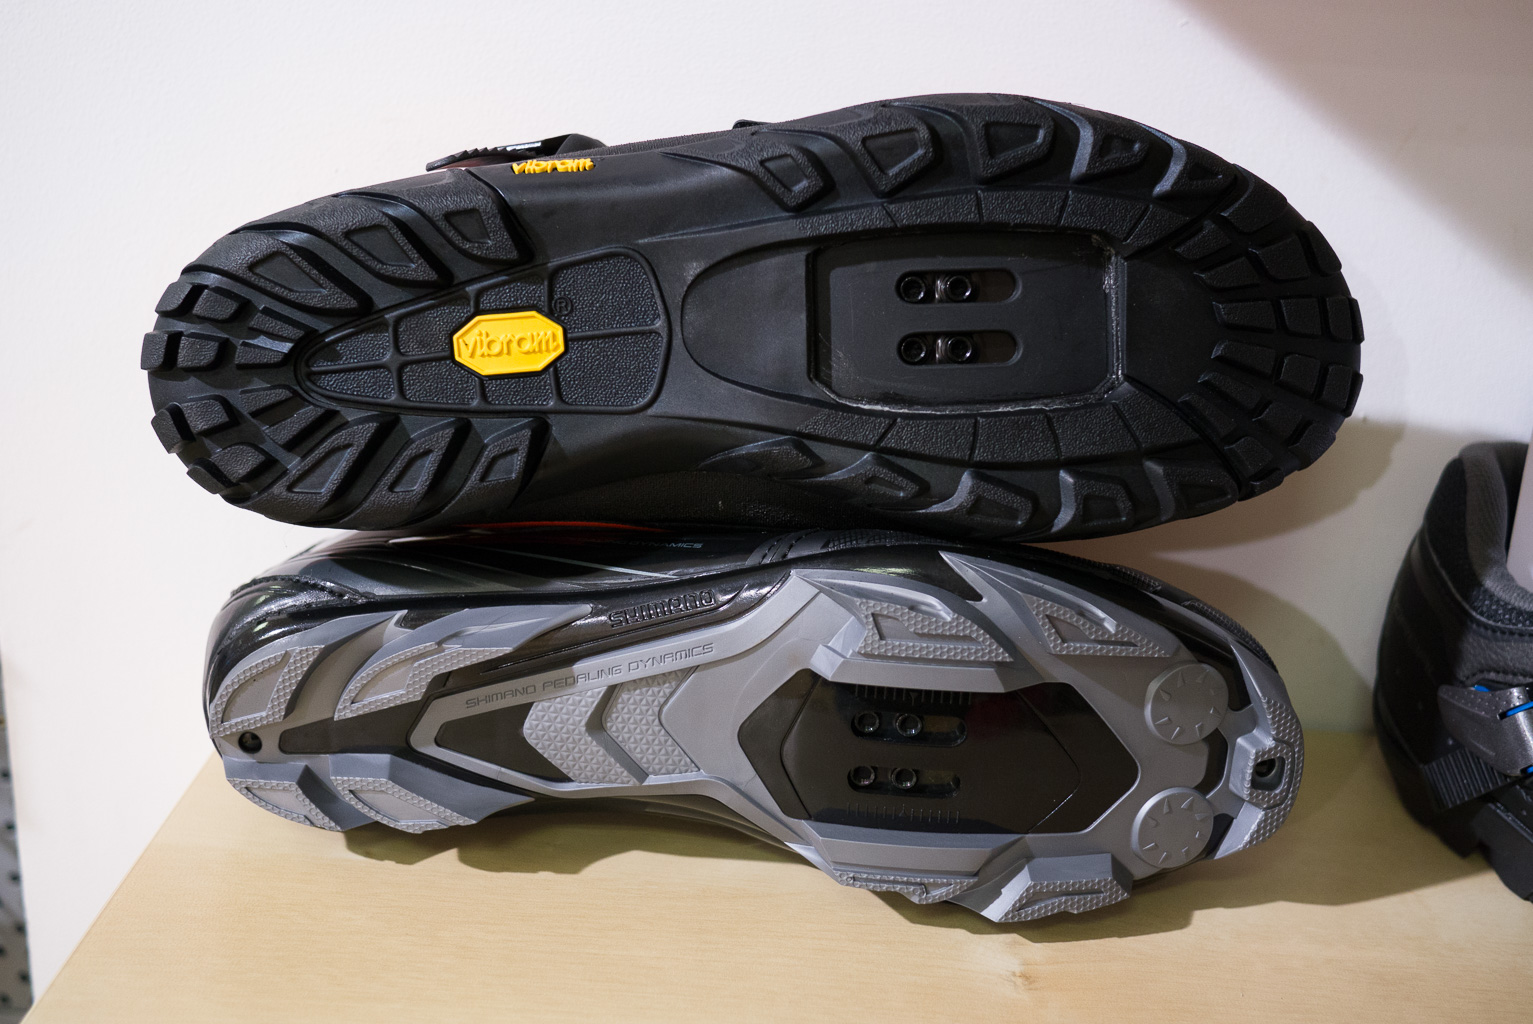 mtb shoe tread designs